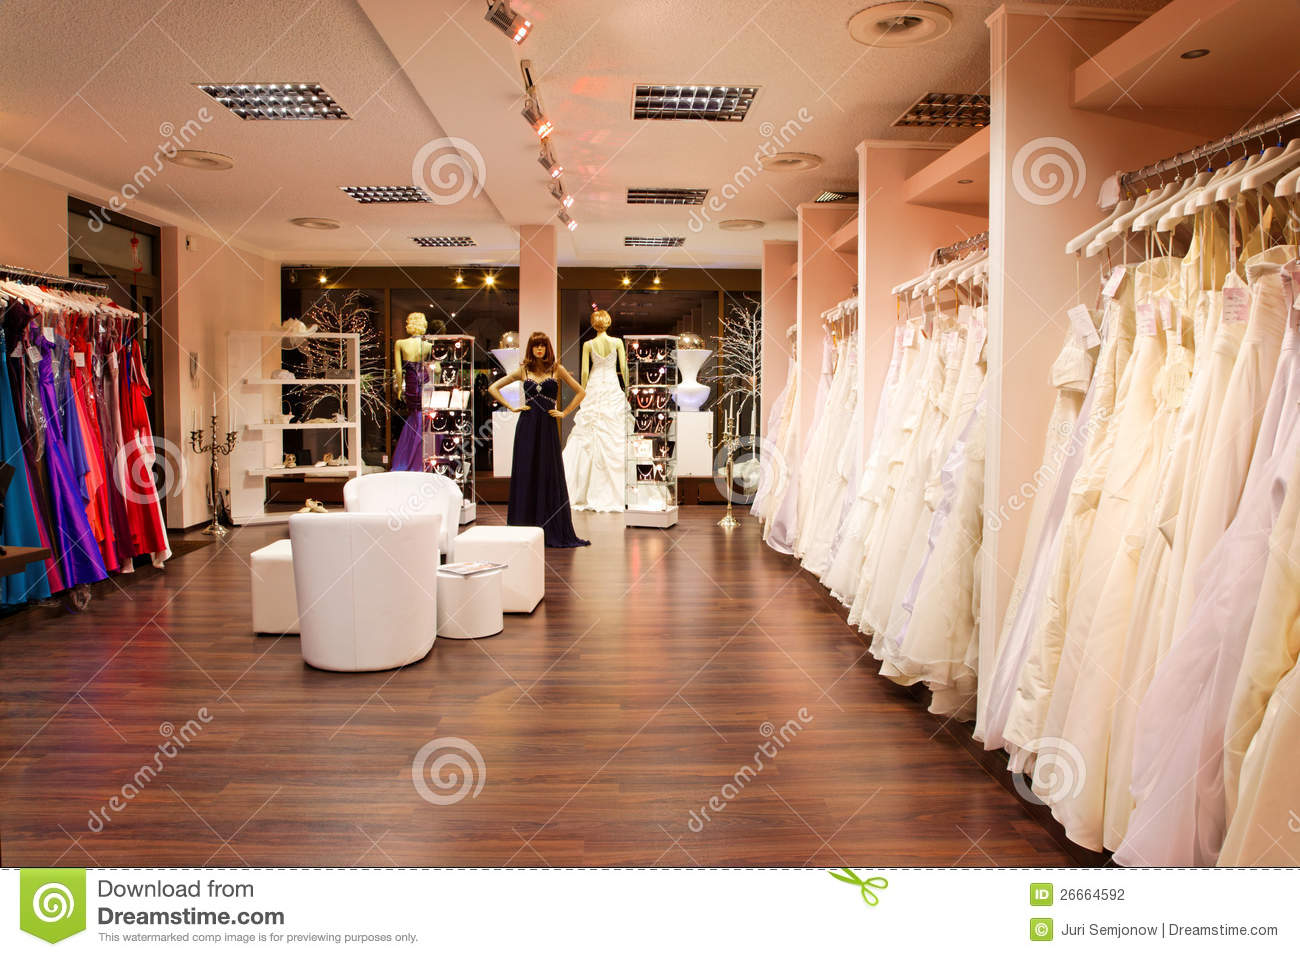 The bridal shop. stock photo. Image of hall, dummy, people - 26664592